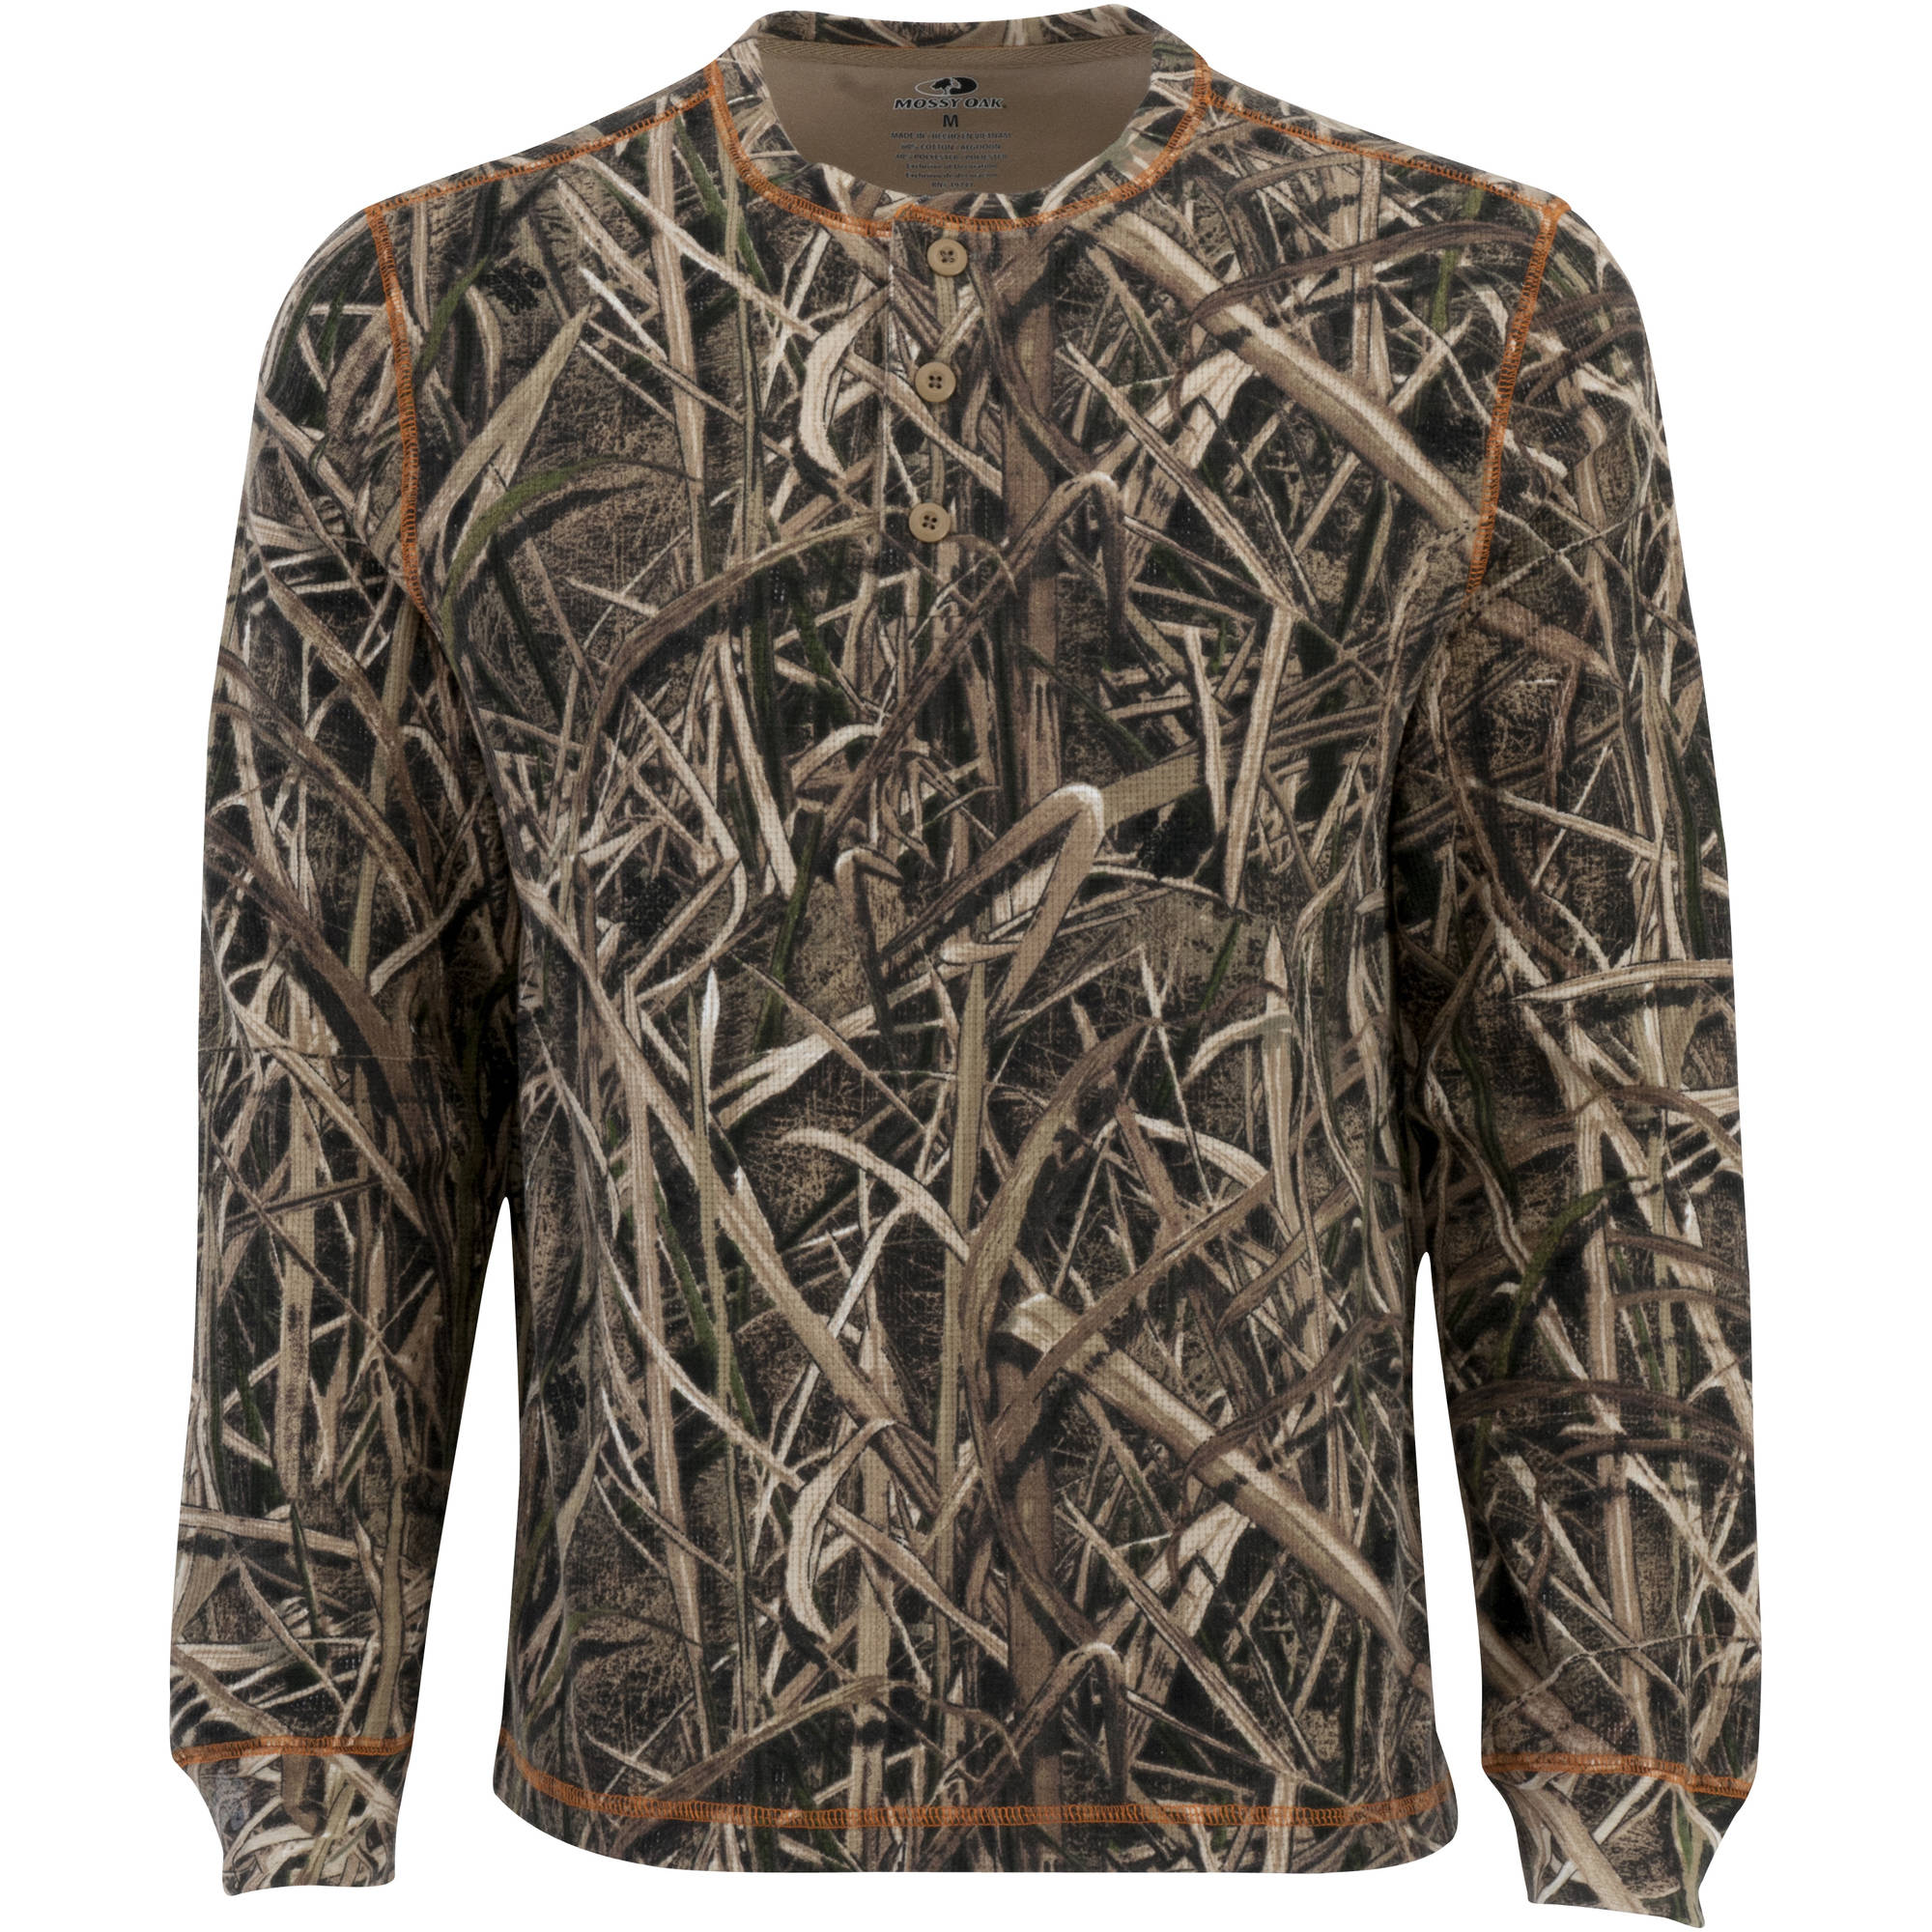 Mossy Oak Men's Long Sleeve Thermal Henley, Multiple Patterns , Size XL